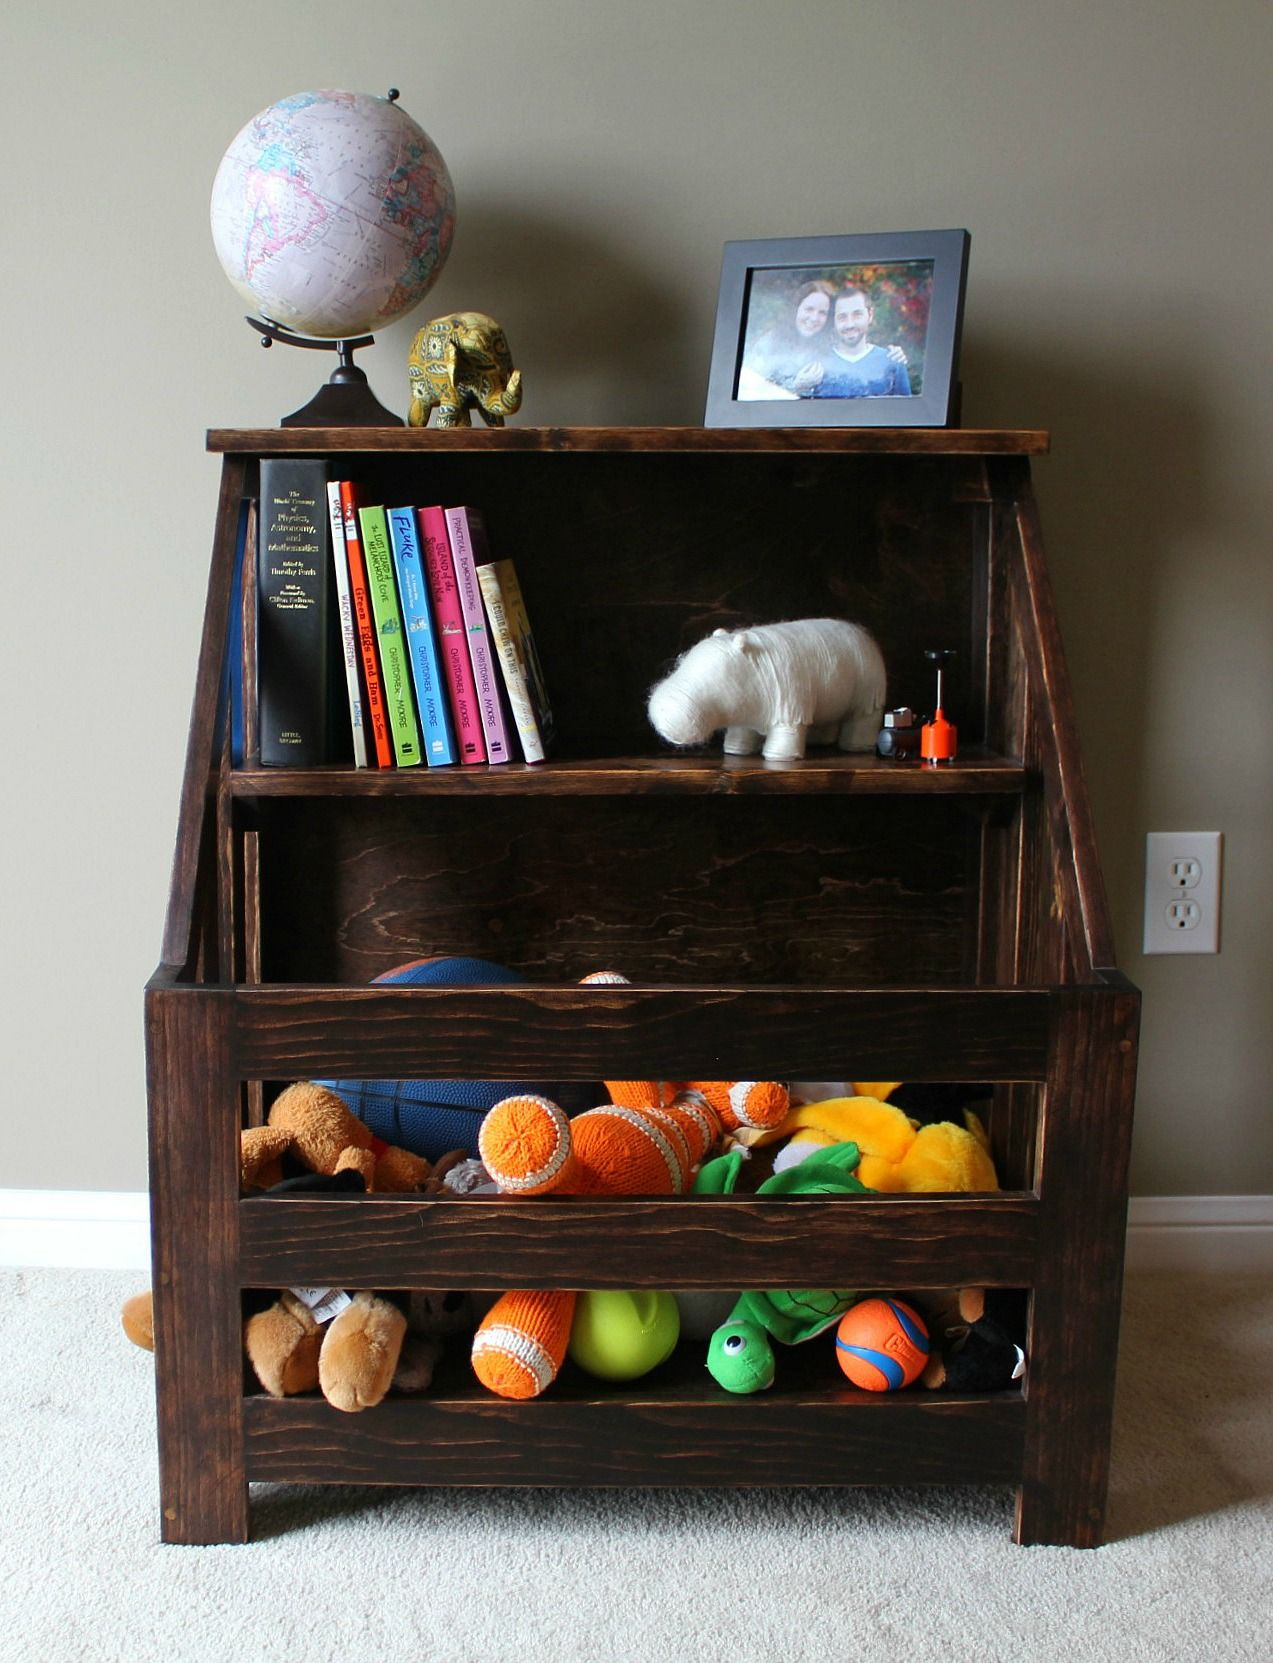 DIY Wood Toybox with bookcase. Looks great and super functional! & DIY Wood Toybox with bookcase. Looks great and super functional ...